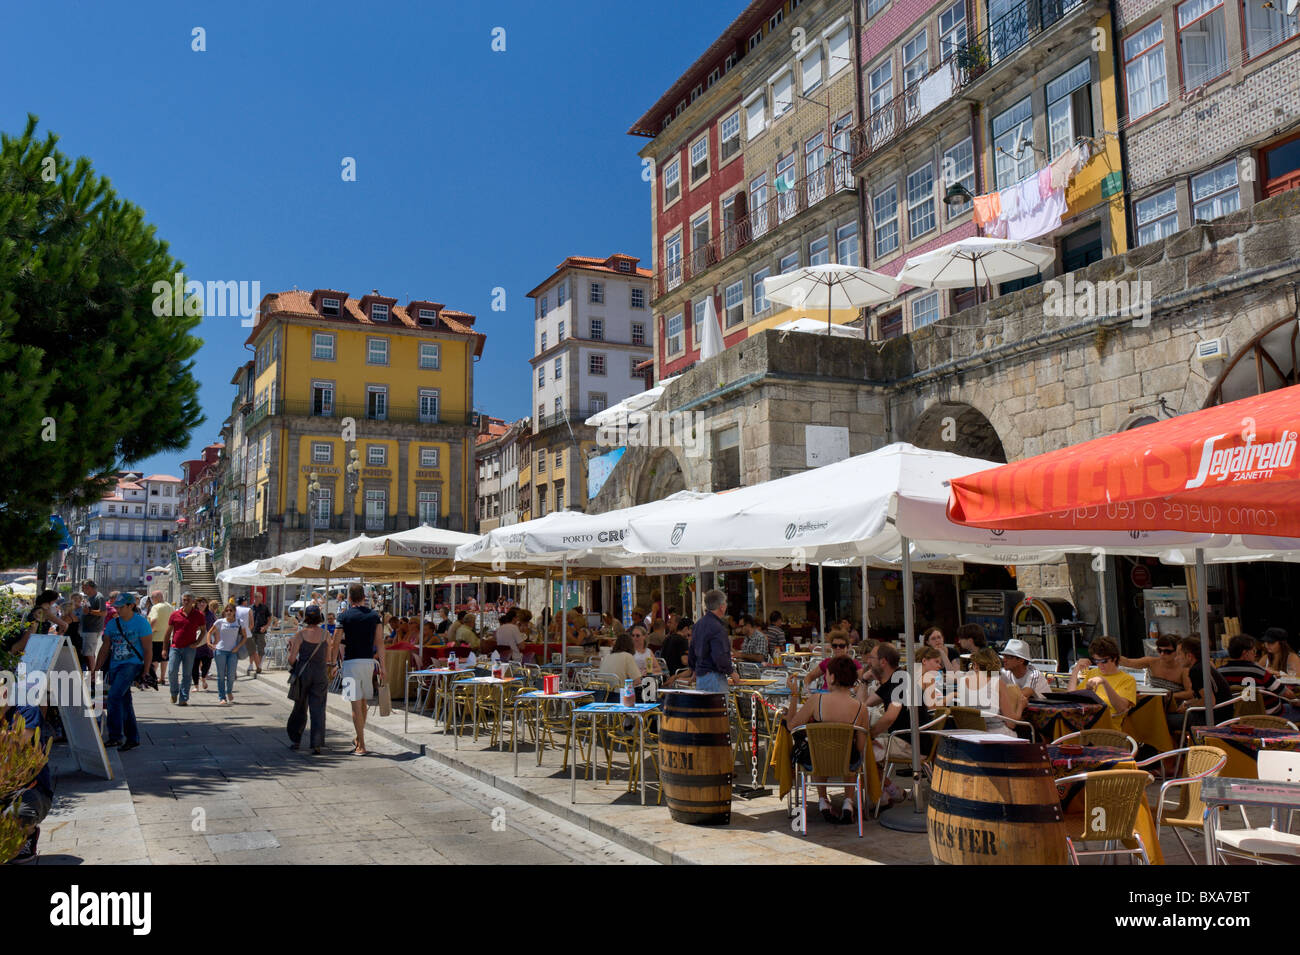 Portugal, Porto, quayside restaurants in the Ribeira district of town with the Pestana Porto Hotel - Stock Image